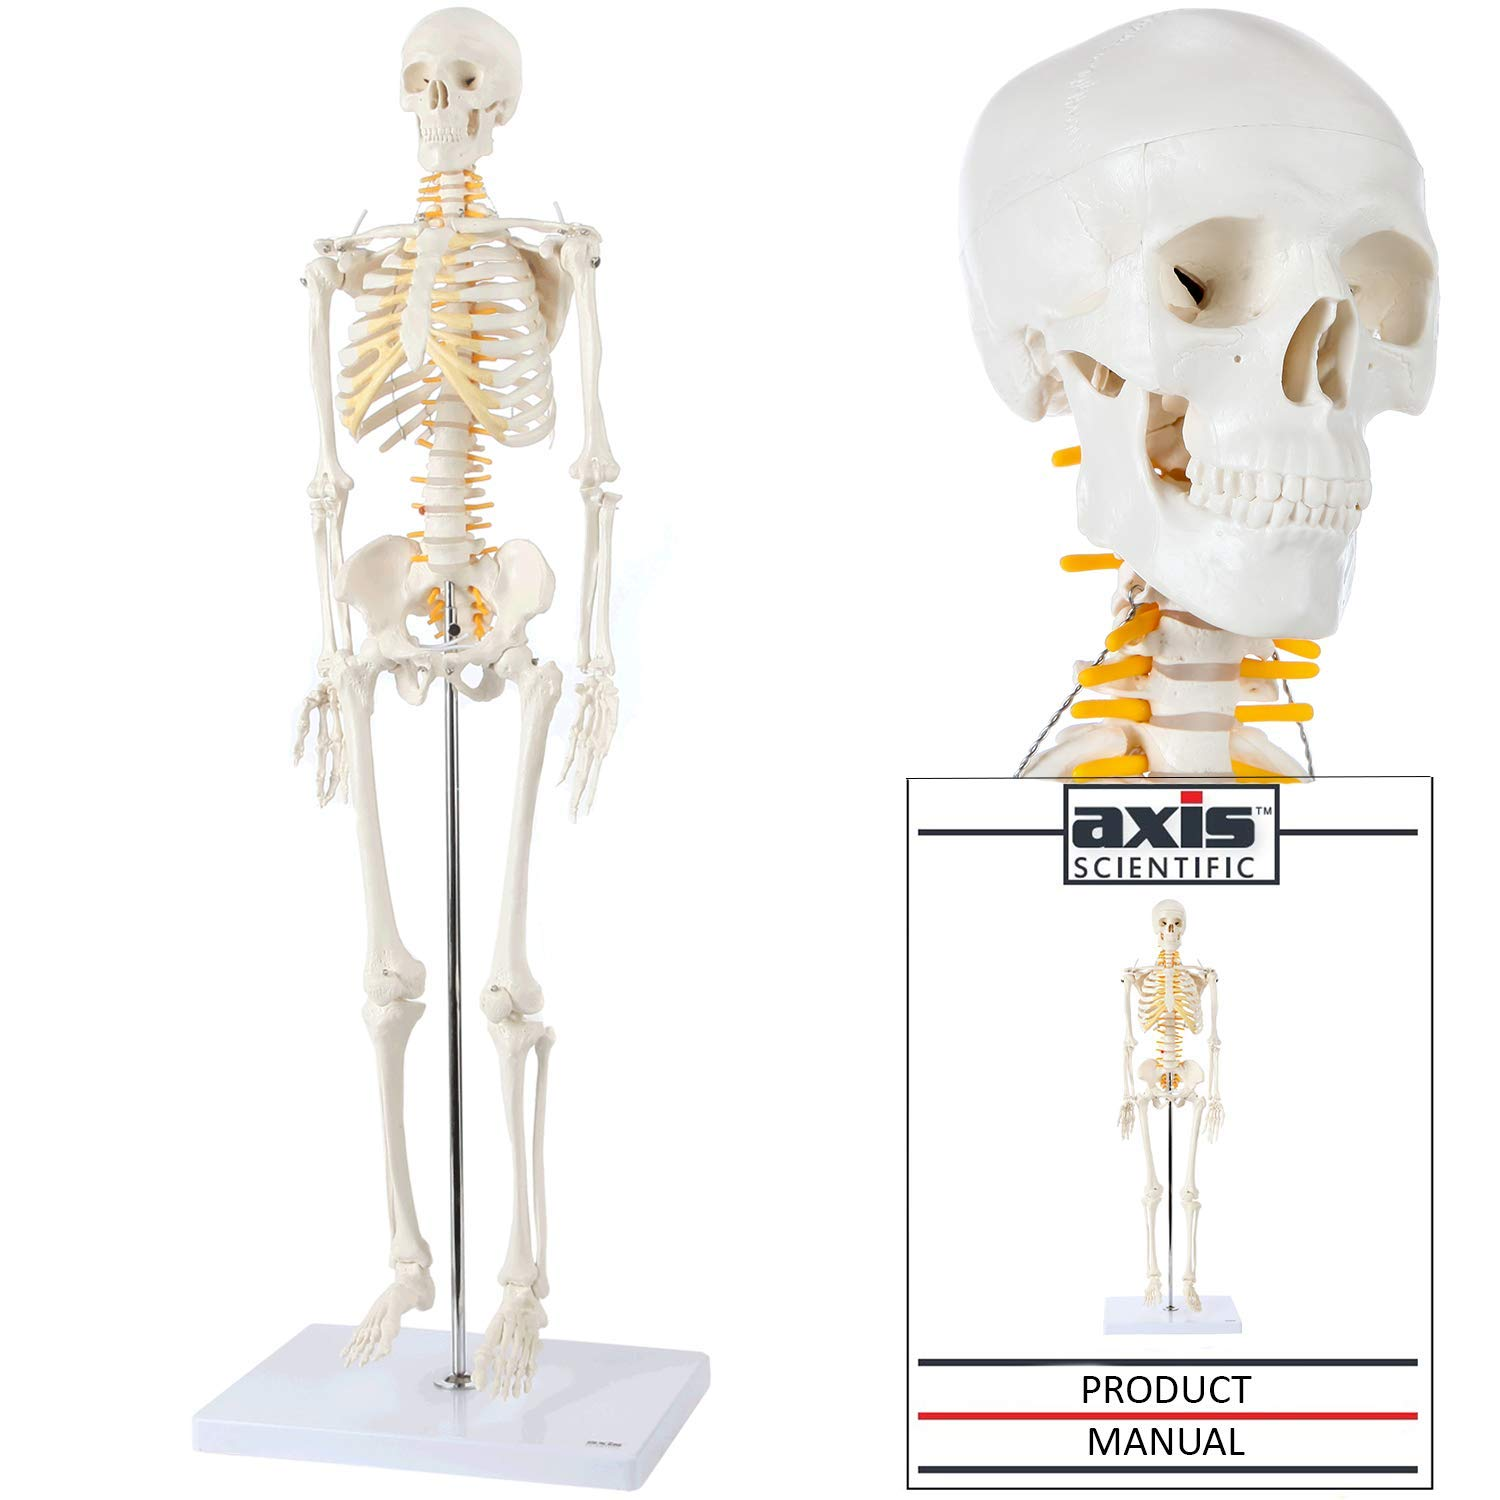 Axis Scientific Mini Human Skeleton Model with Metal Stand - 31 Inches Tall with Removable Arms and Legs, Easy to Assemble, Includes Detailed Product Manual for Study and Reference, Worry Free 3 Year Warranty by Axis Scientific